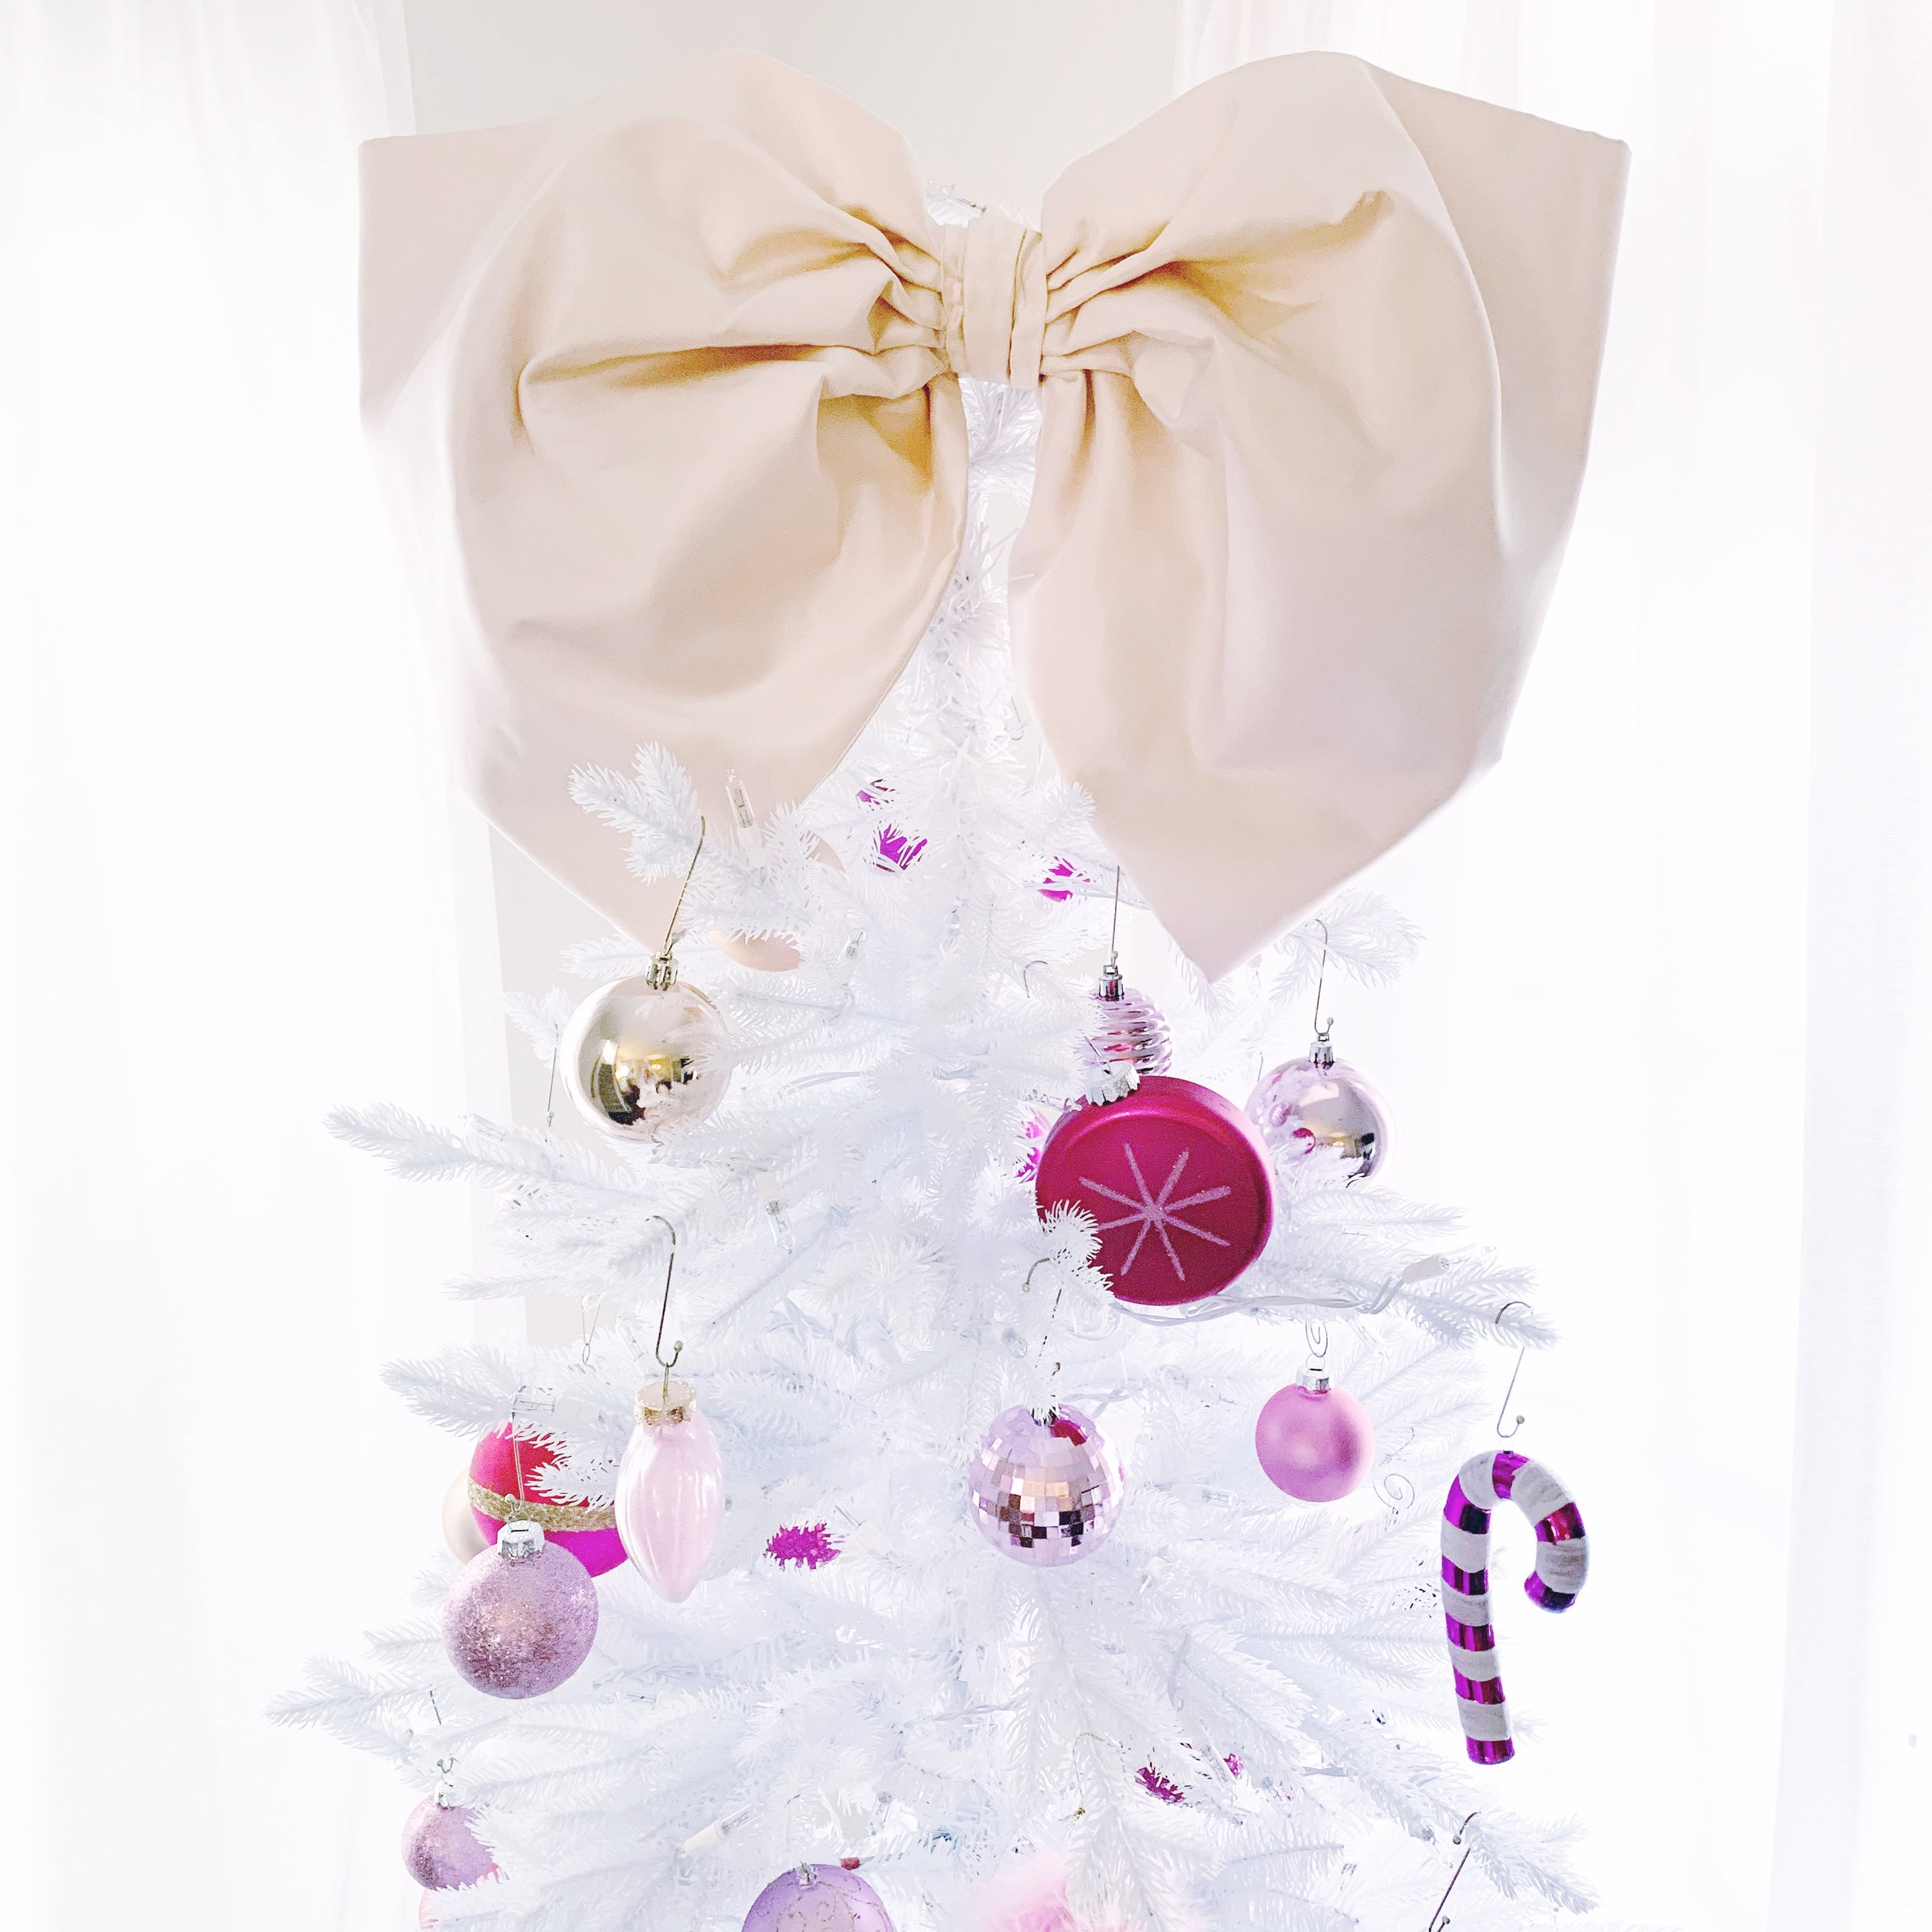 Caroline-Doll-Christmas-Tree-home-decor.JPG